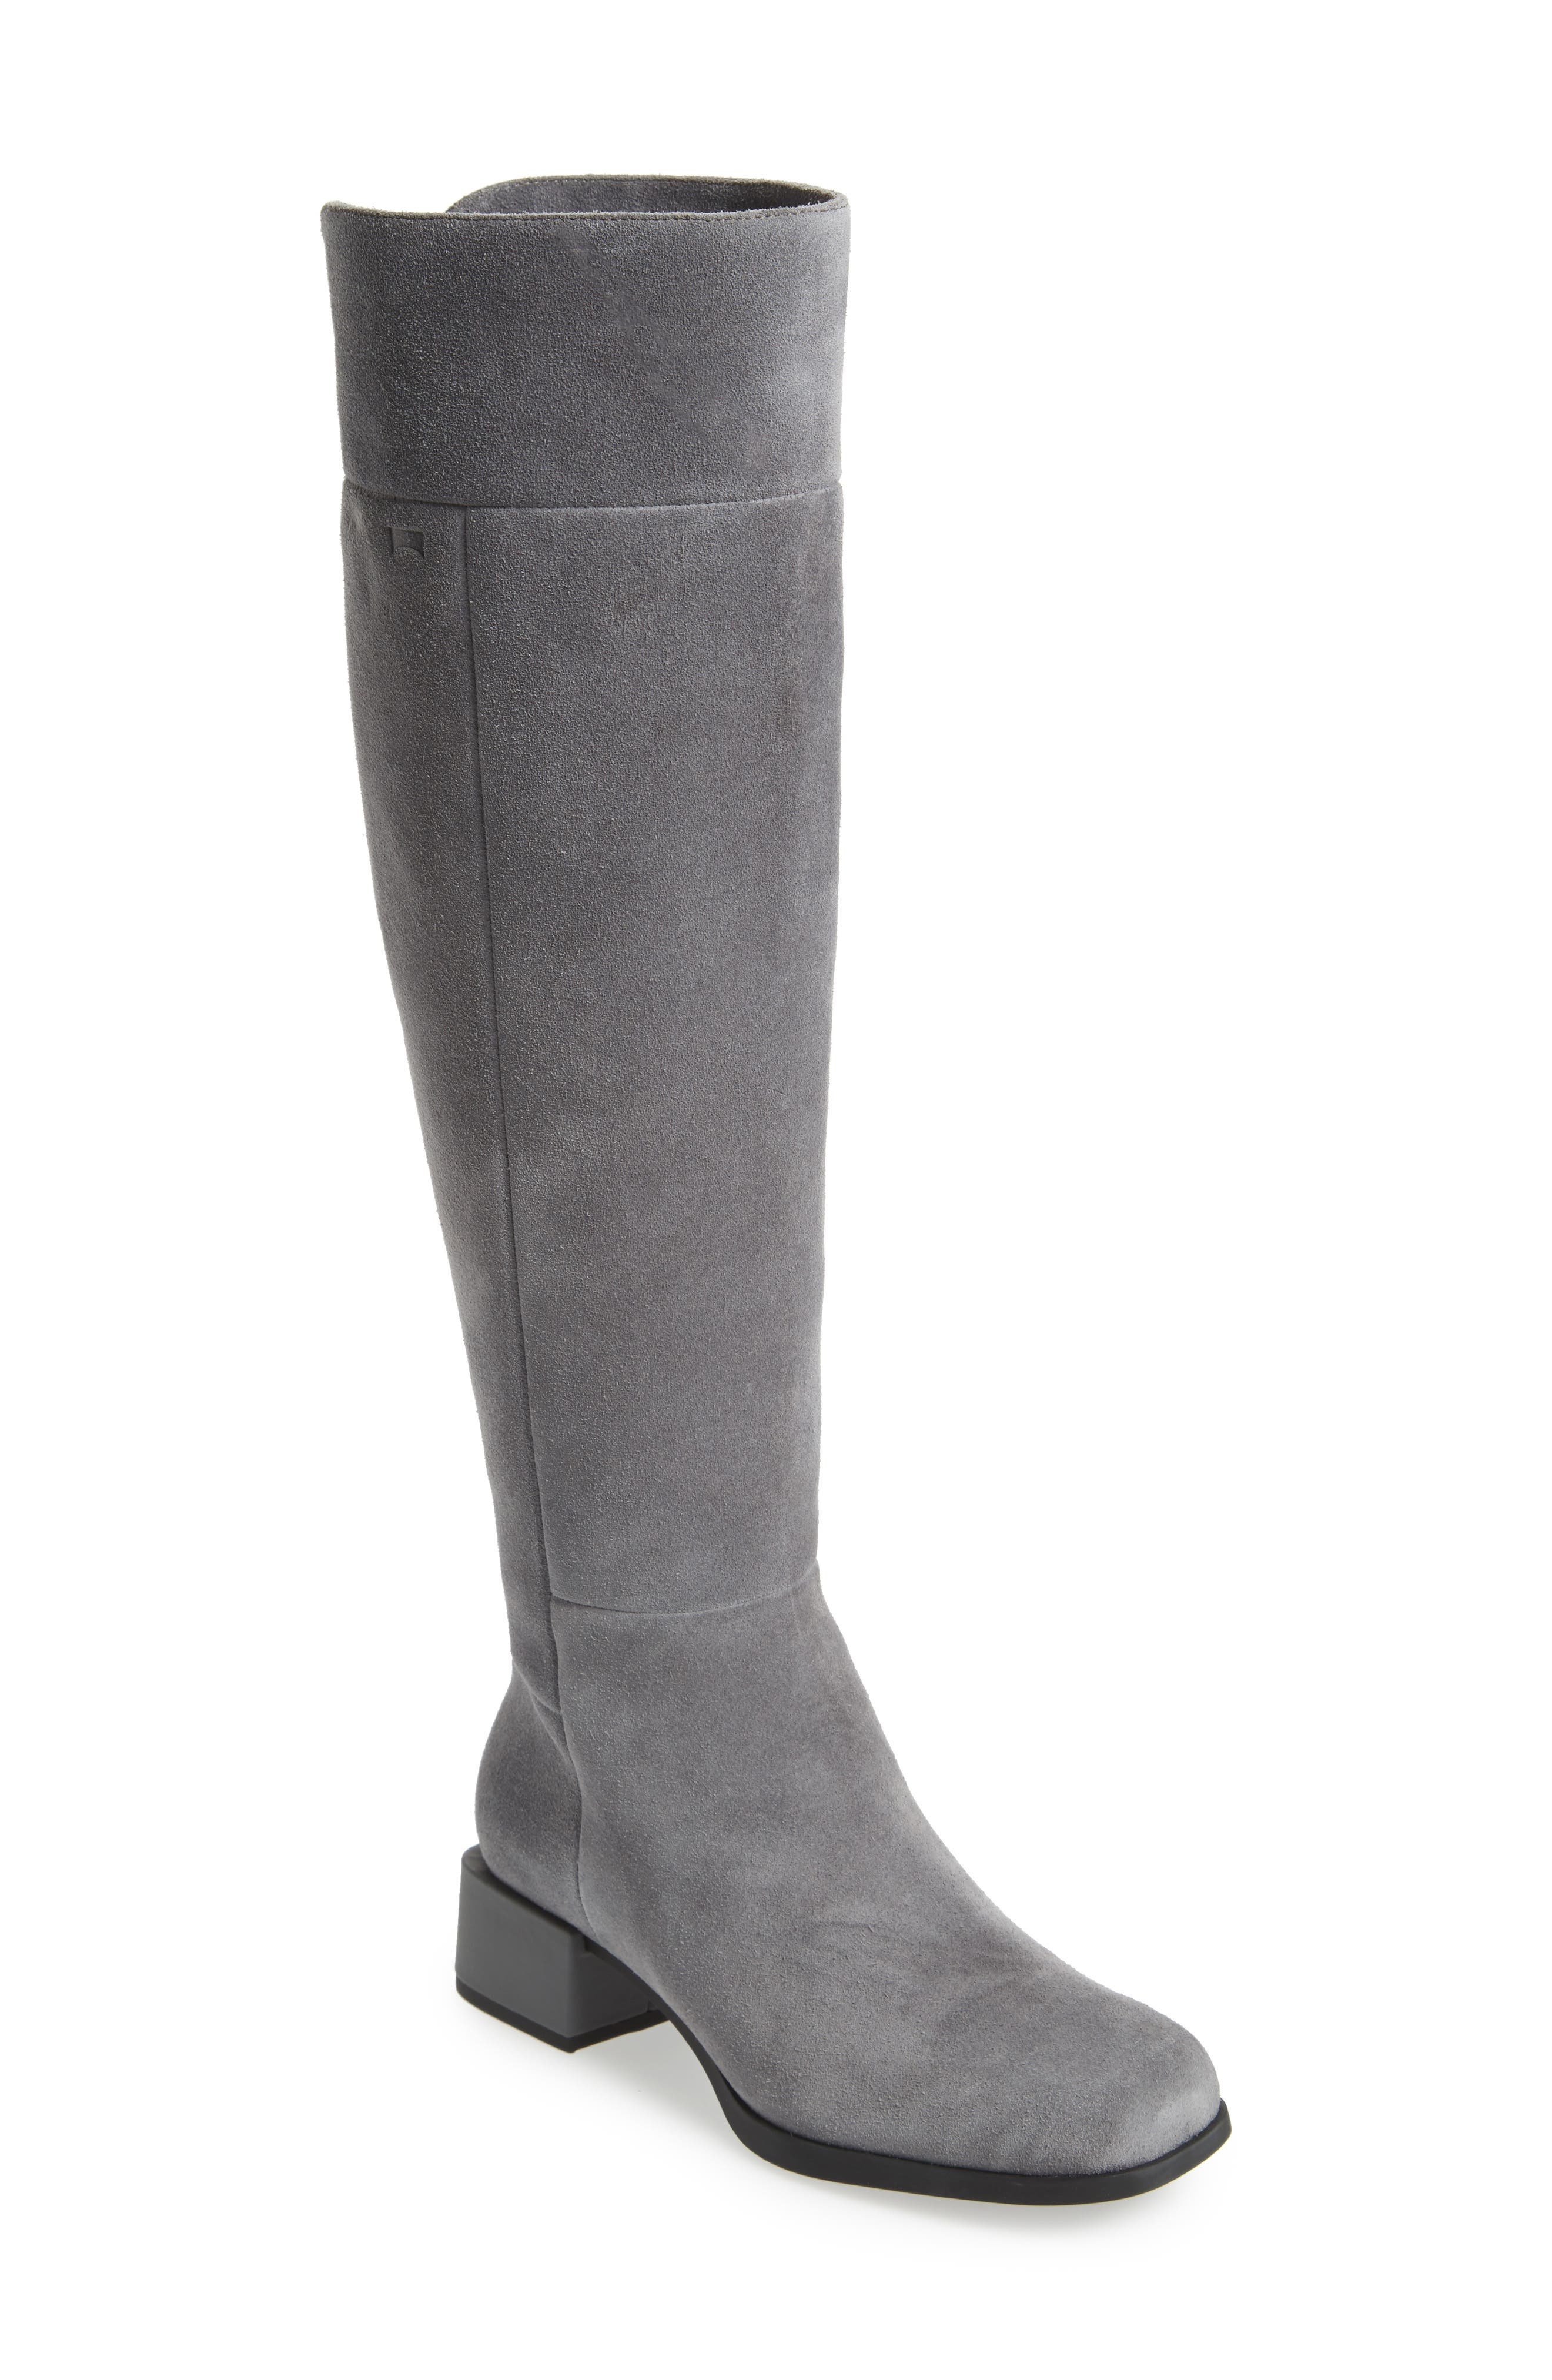 Kobo Knee High Boot,                         Main,                         color, Grey Leather